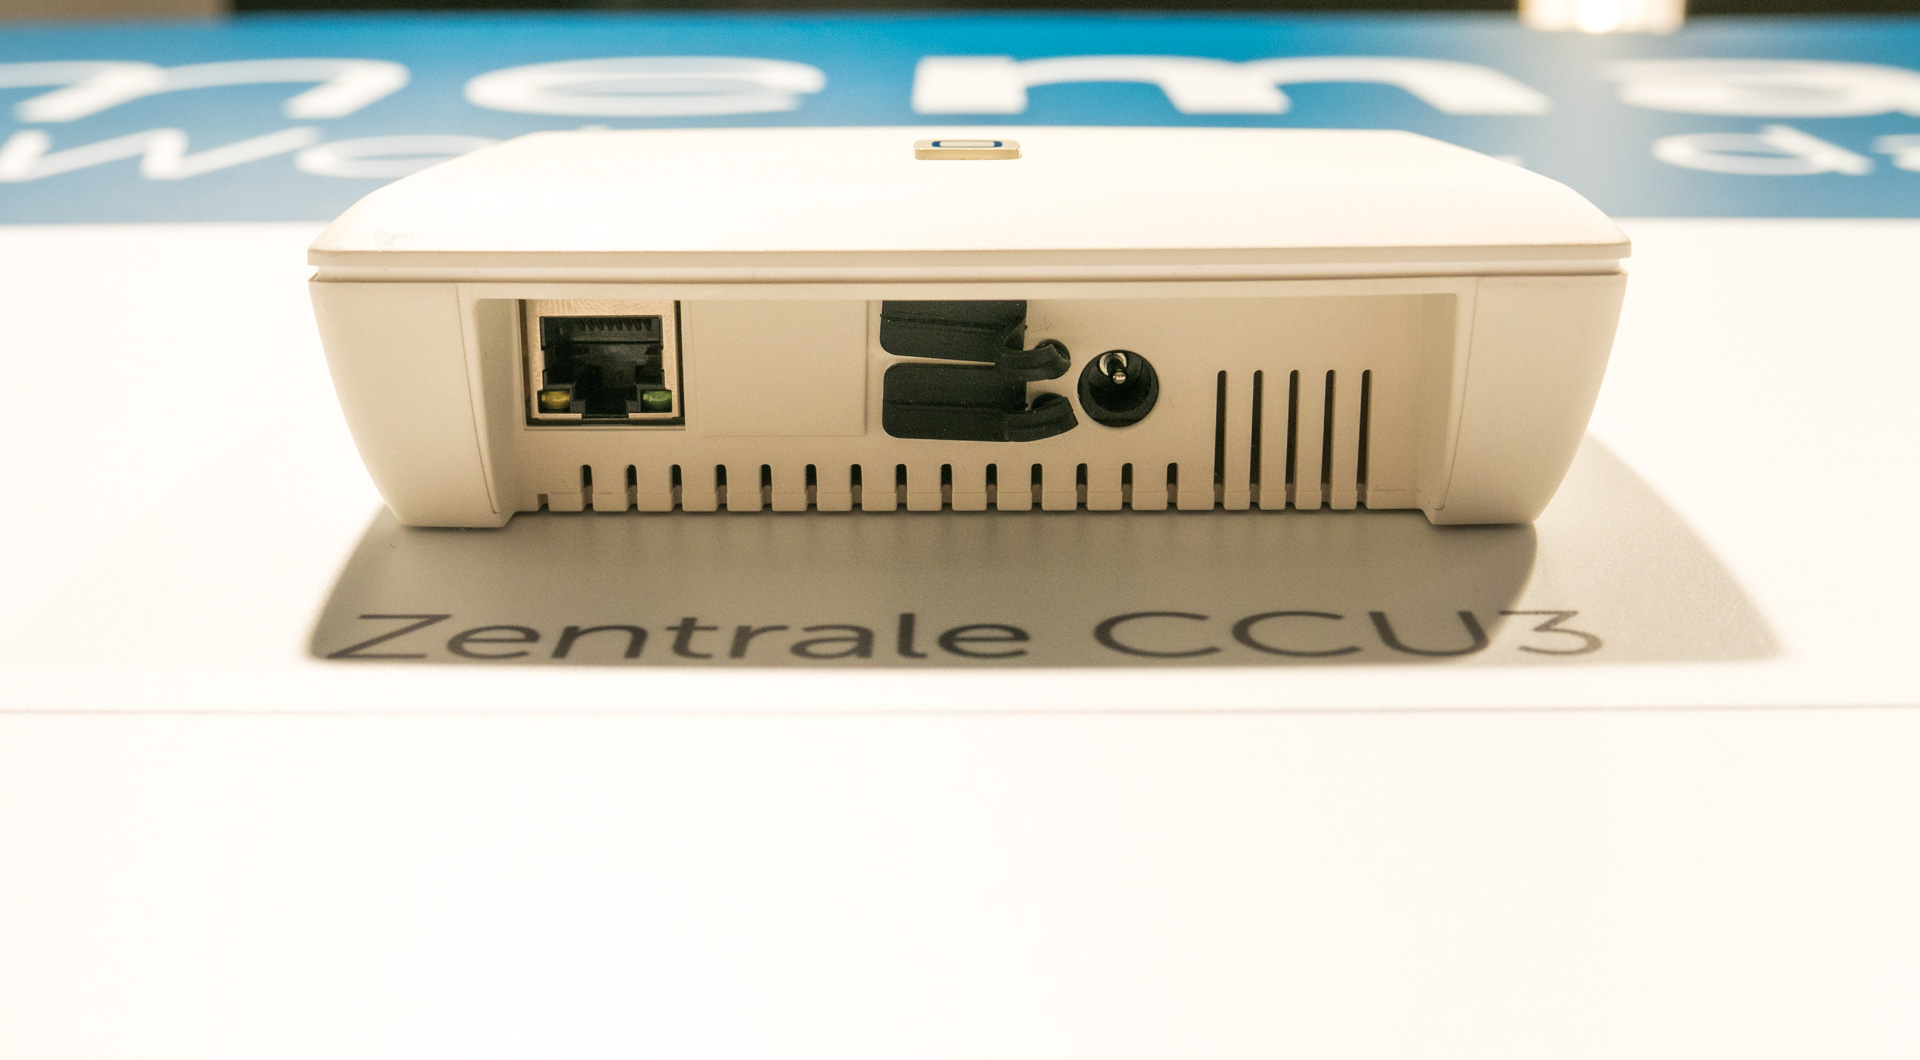 Homematic CCU3 04